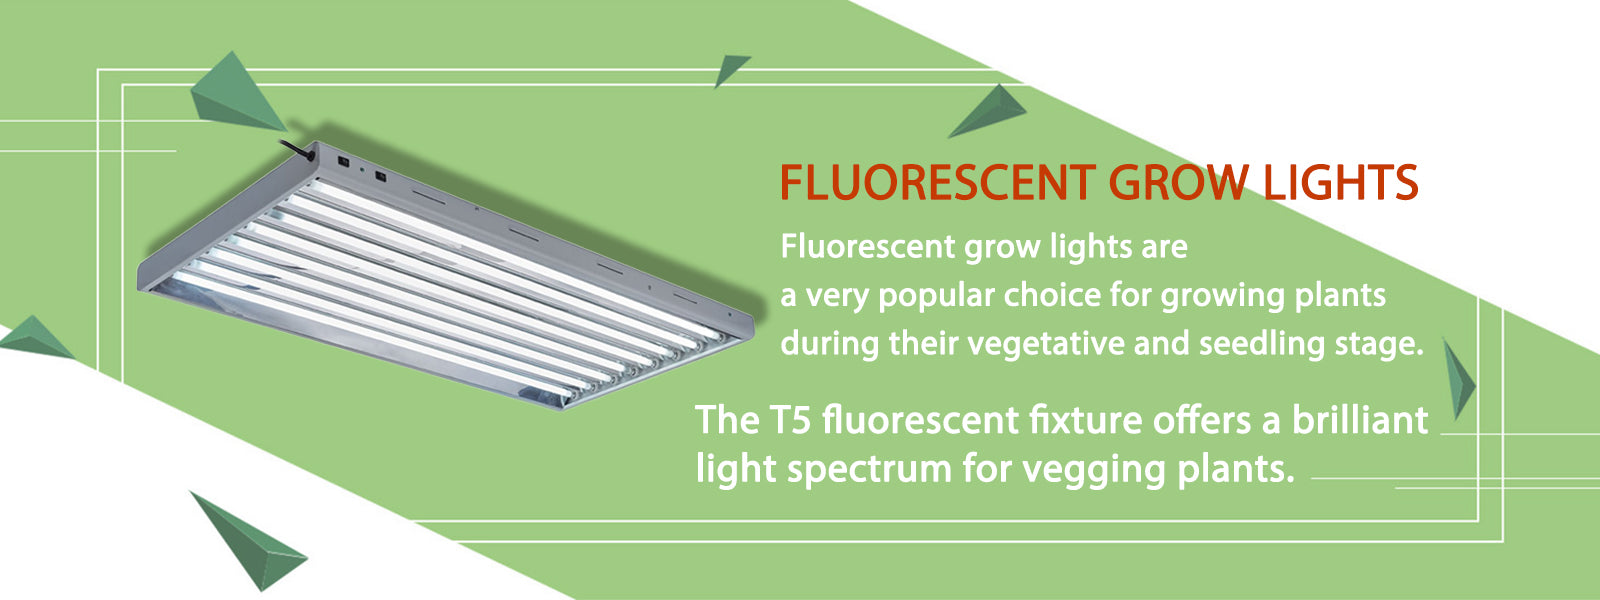 The Best Fluorescent Grow Lights For Growing Plant For Sale